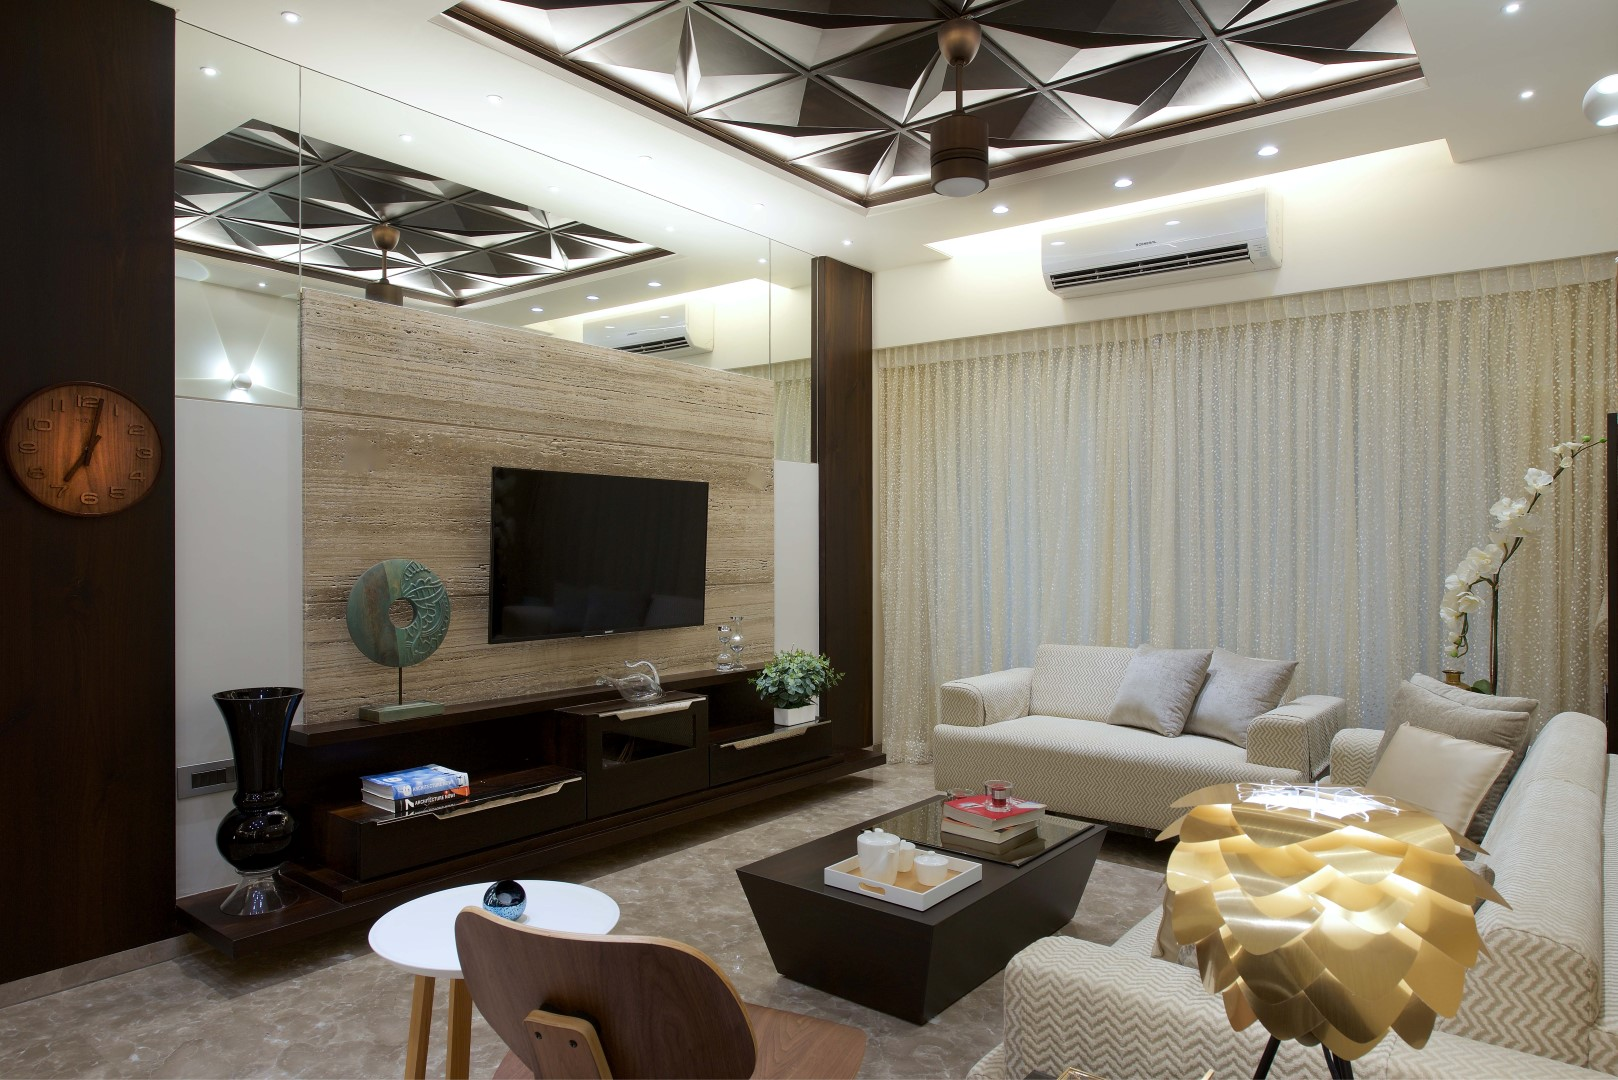 2 boutique 3bhk home designed by zed designs